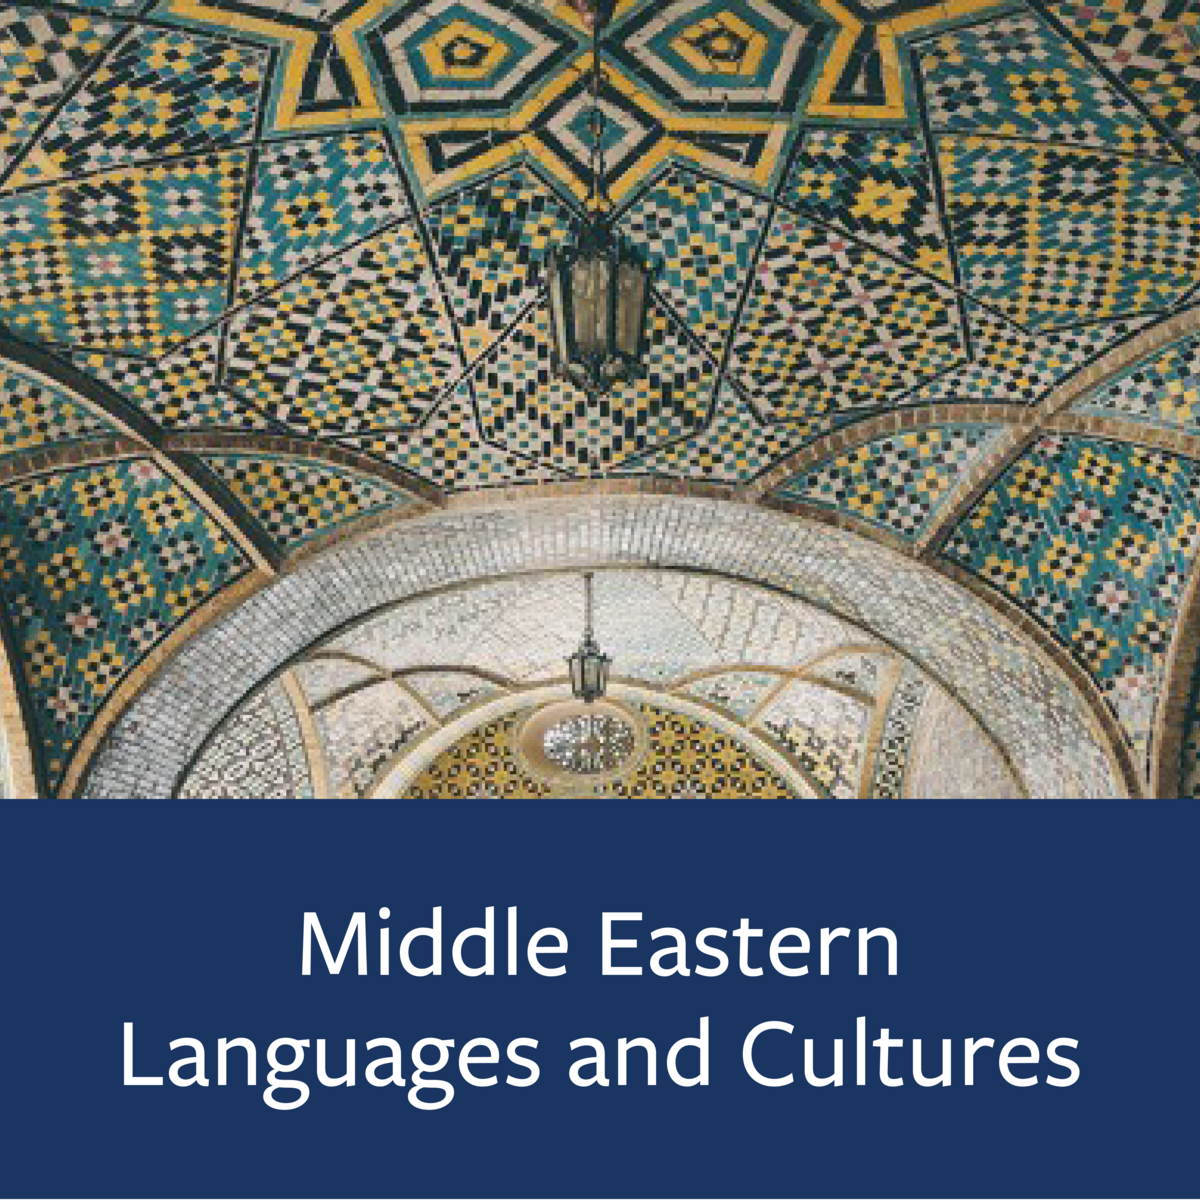 Middle Eastern Languages and Cultures